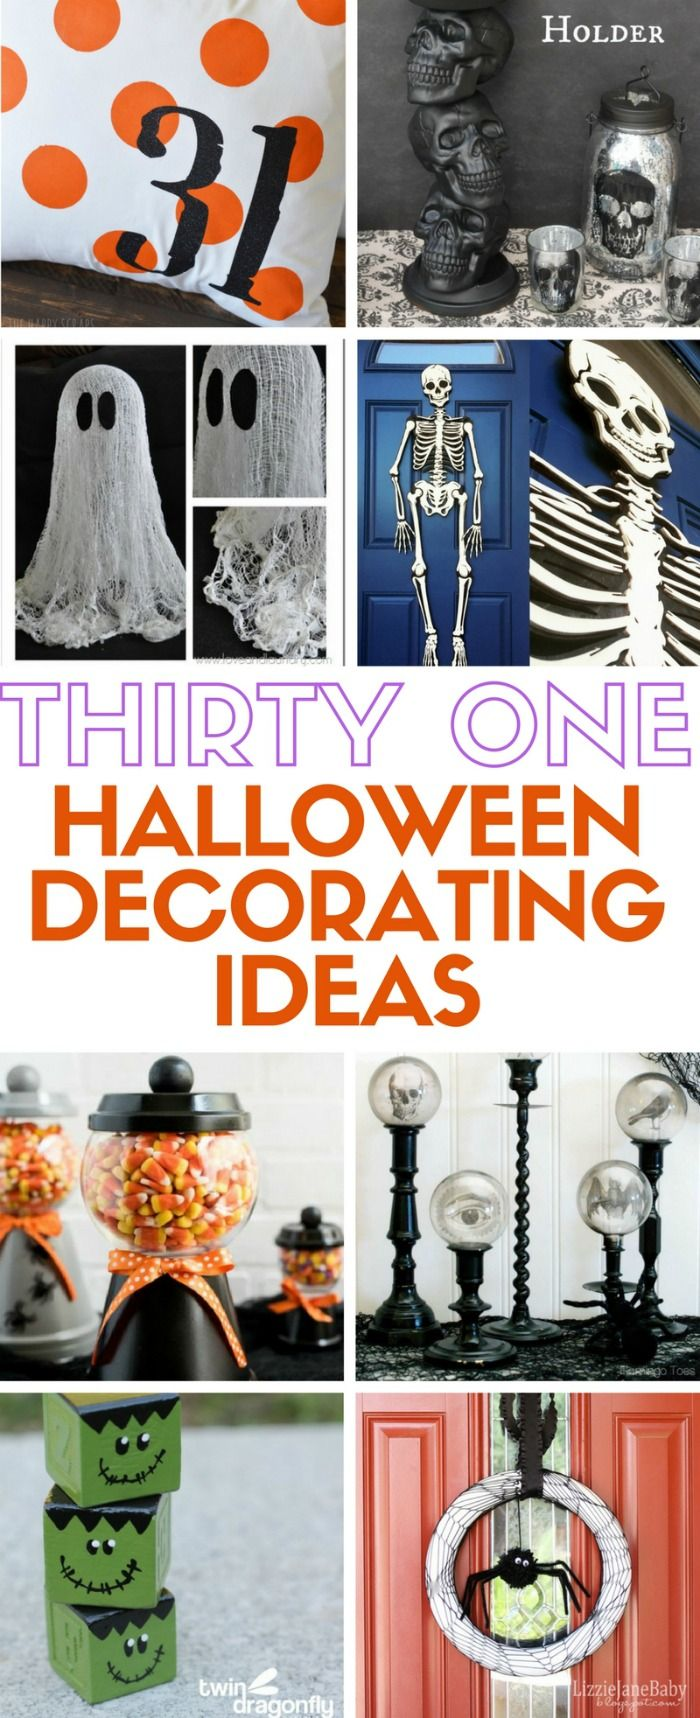 48 best diy fall and autumn images on pinterest for Make your own halloween decorations